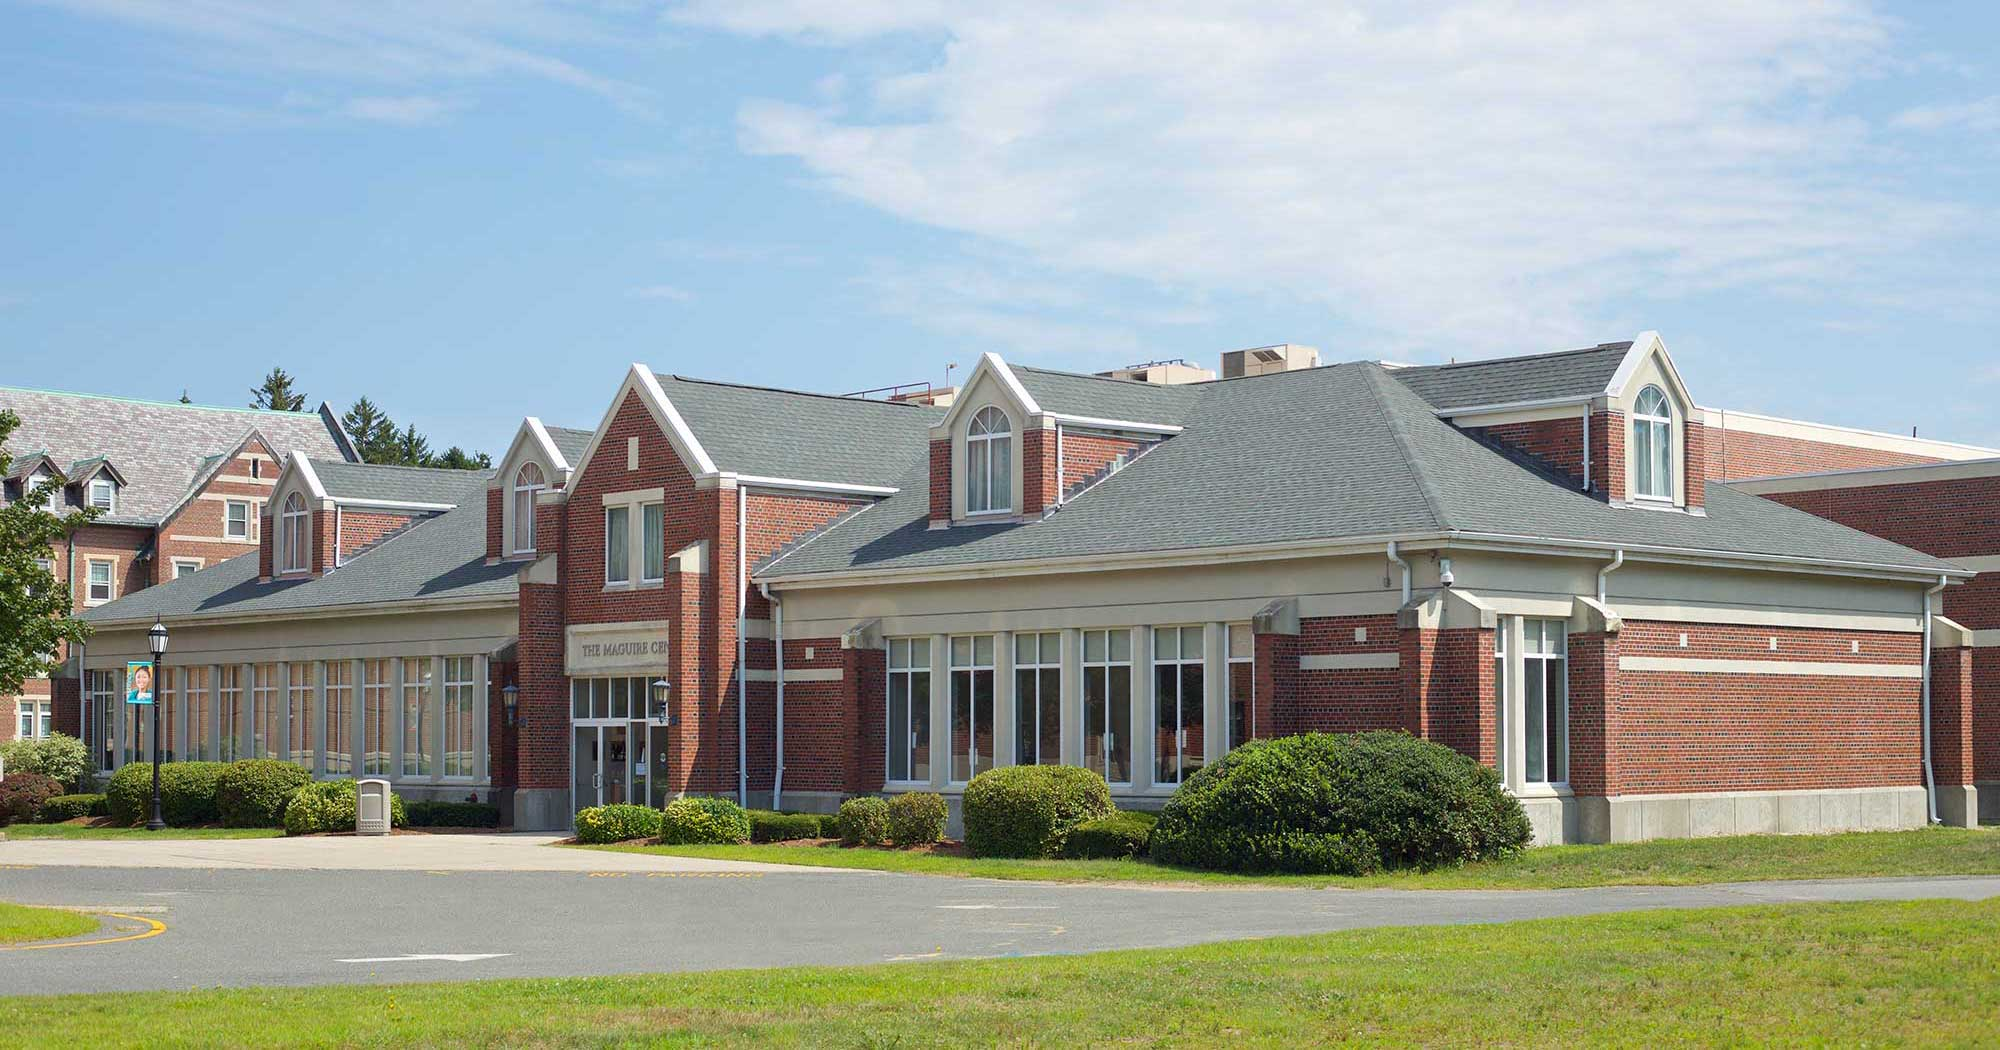 Photo of the exterior of the Maguire Center